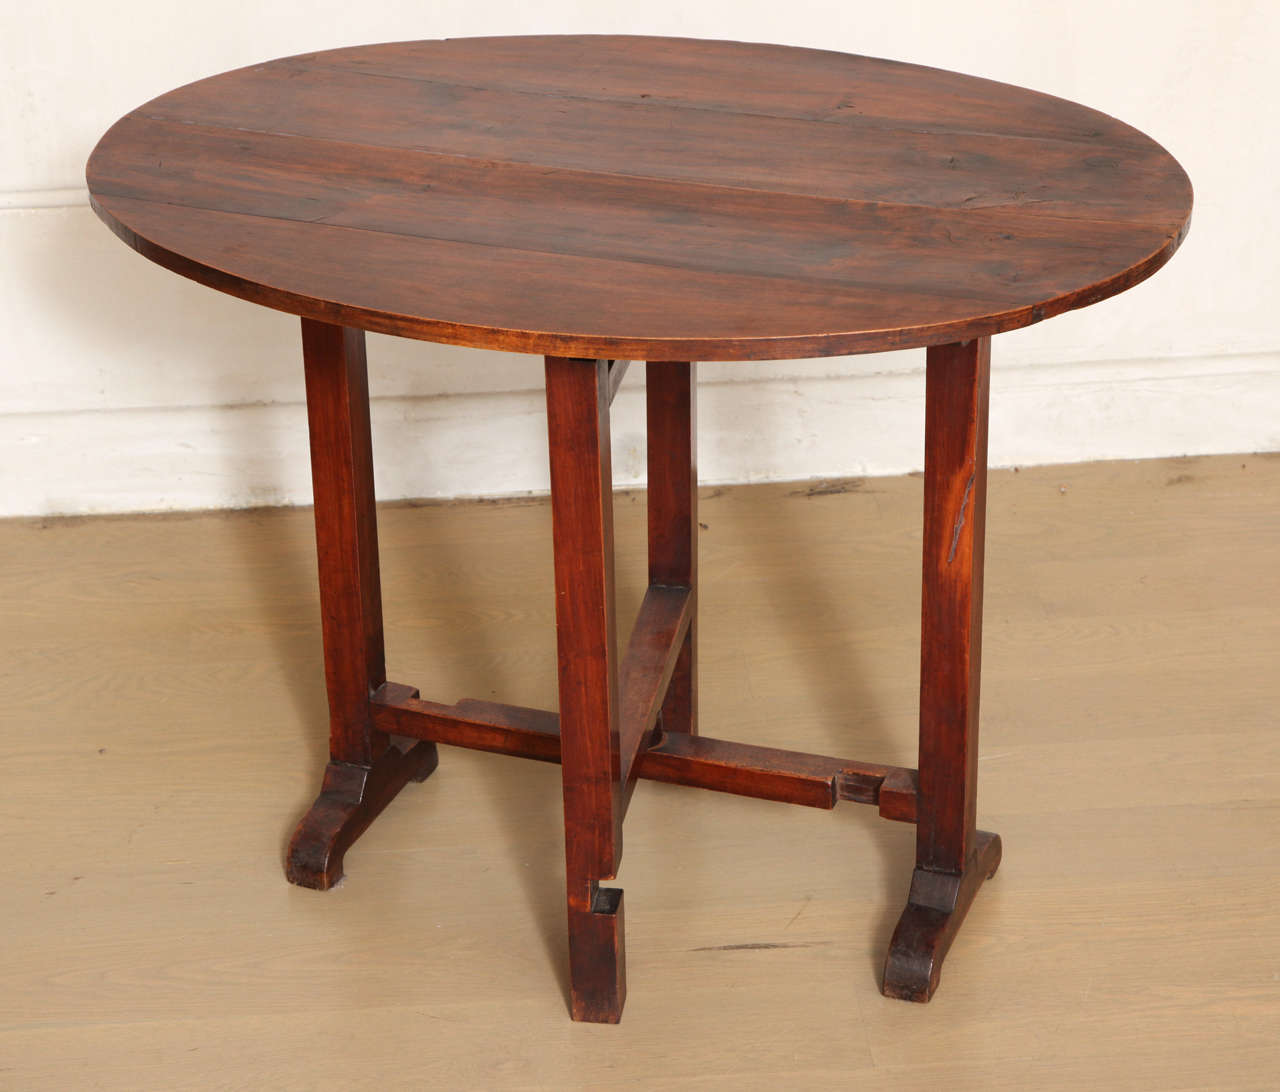 French Oval Cherry Folding Tilt Top Side Table, Late 19th Or 20th Century 2